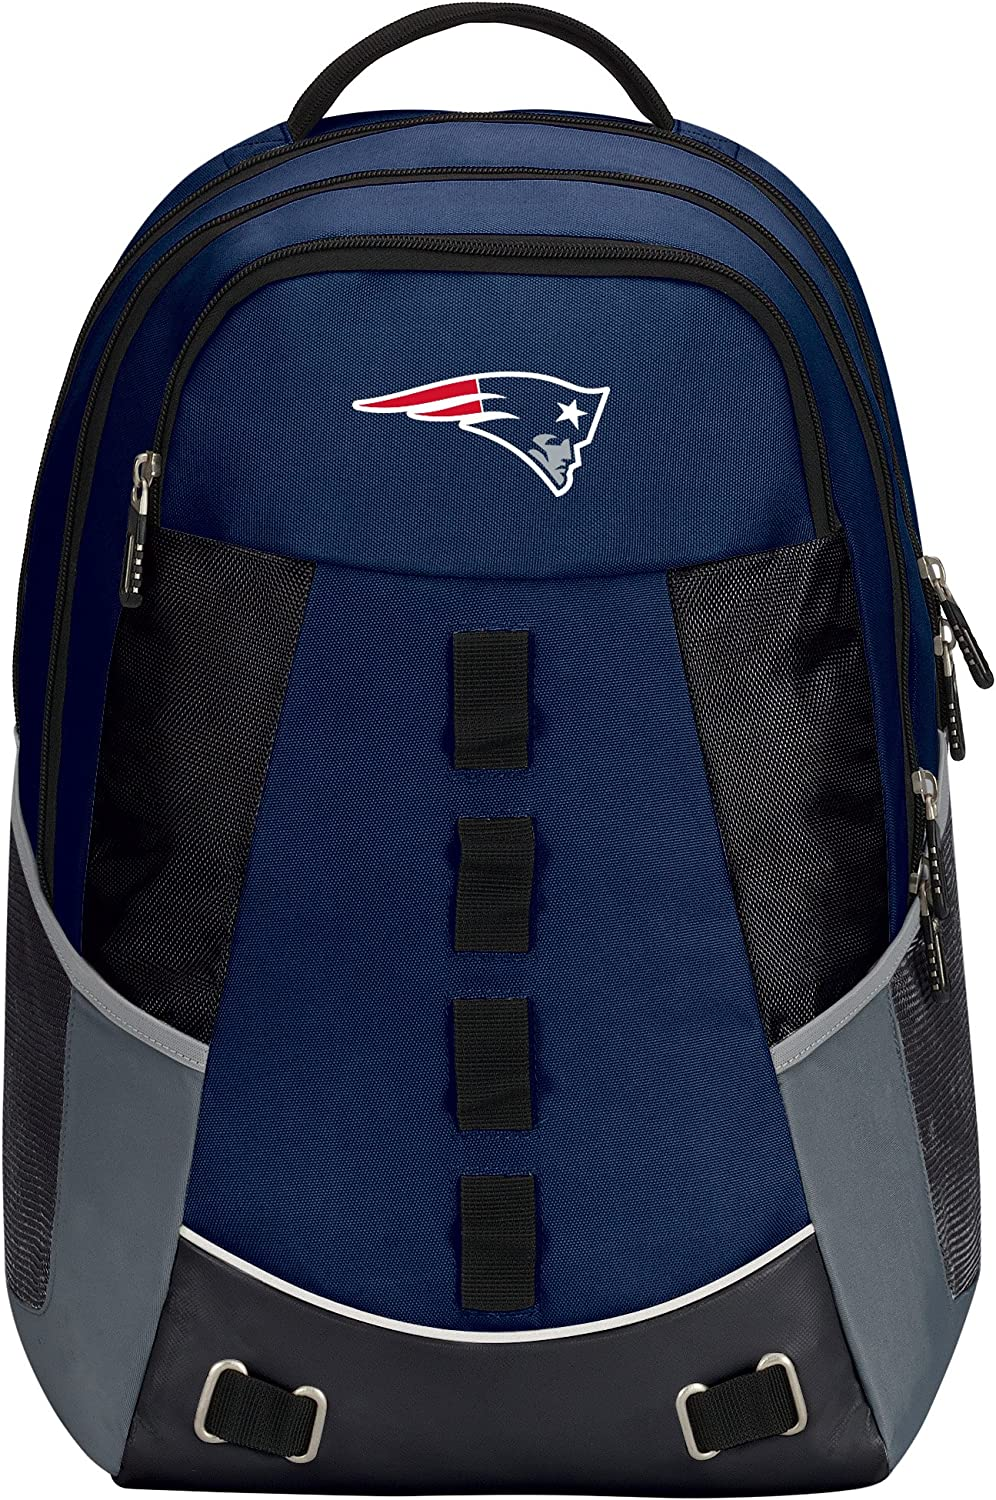 "Officially Licensed NFL ""Personnel"" Backpack, 19"", Multi Color"